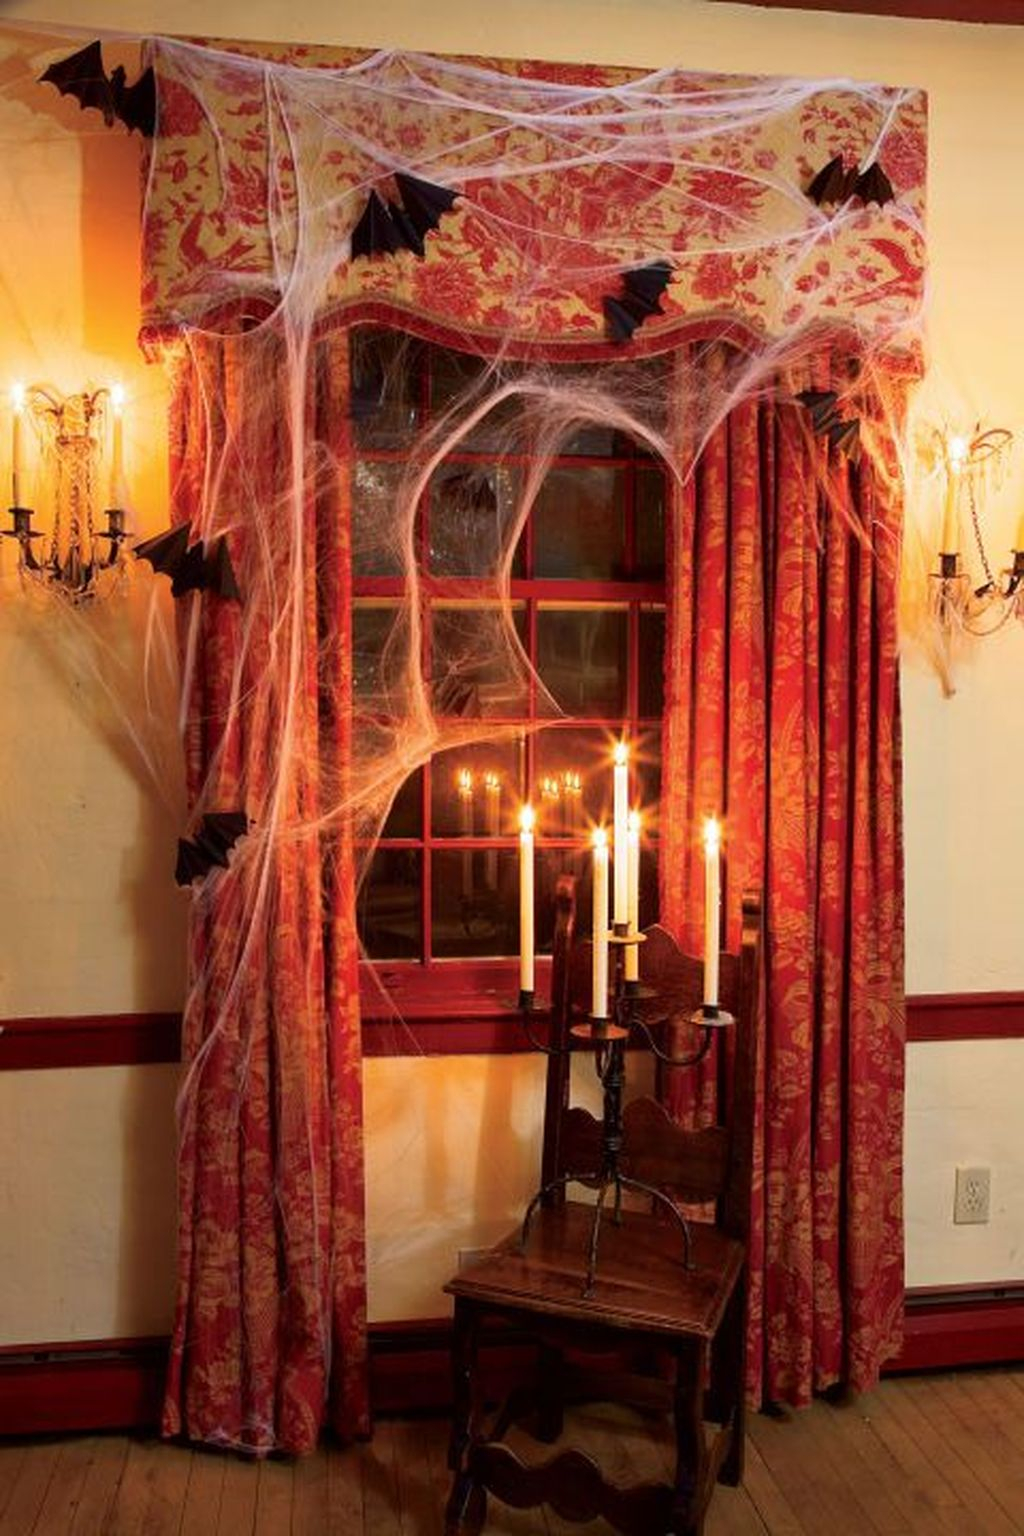 Scary But Creative DIY Halloween Window Decorations Ideas You Should Try 16